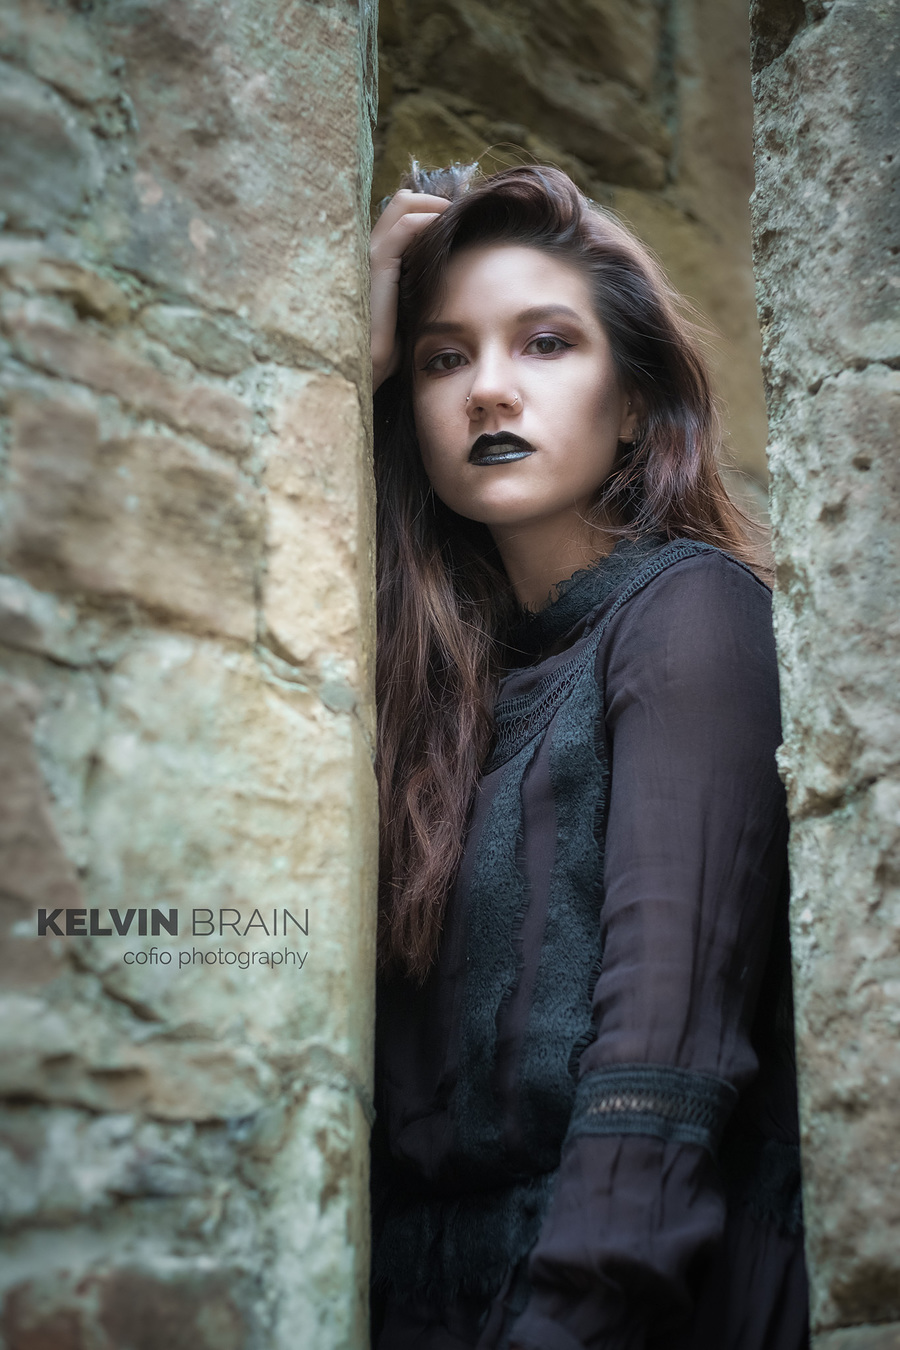 Follow Me / Photography by Kelvin Brain - Mill-Lodge Brecon Beacons, Model ModelMaya, Post processing by Kelvin Brain - Mill-Lodge Brecon Beacons / Uploaded 16th April 2017 @ 02:58 PM